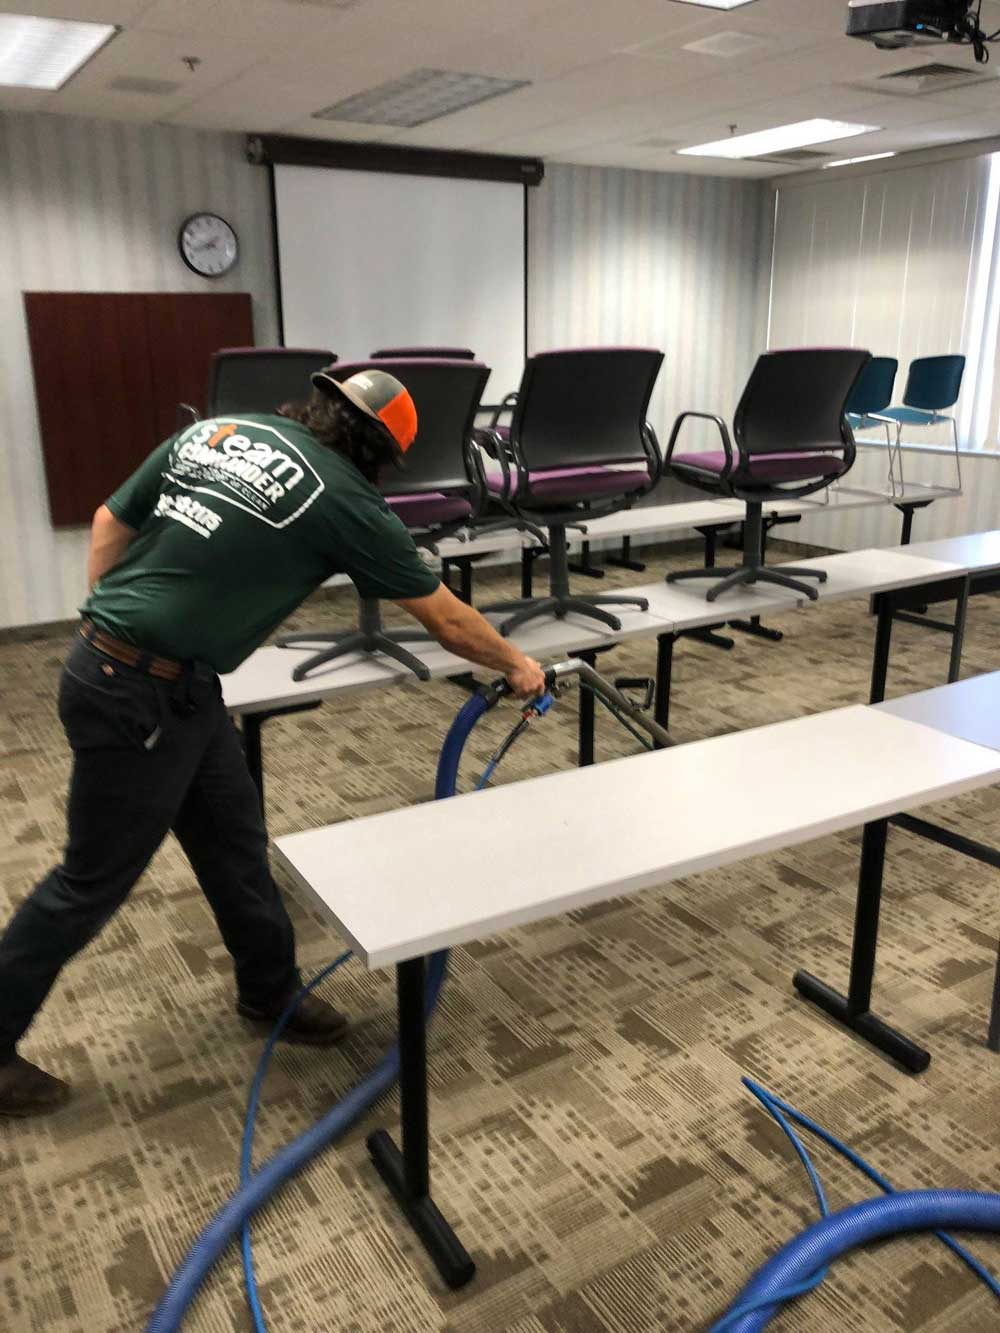 Commercial carpet cleaning in Brownwood, TX